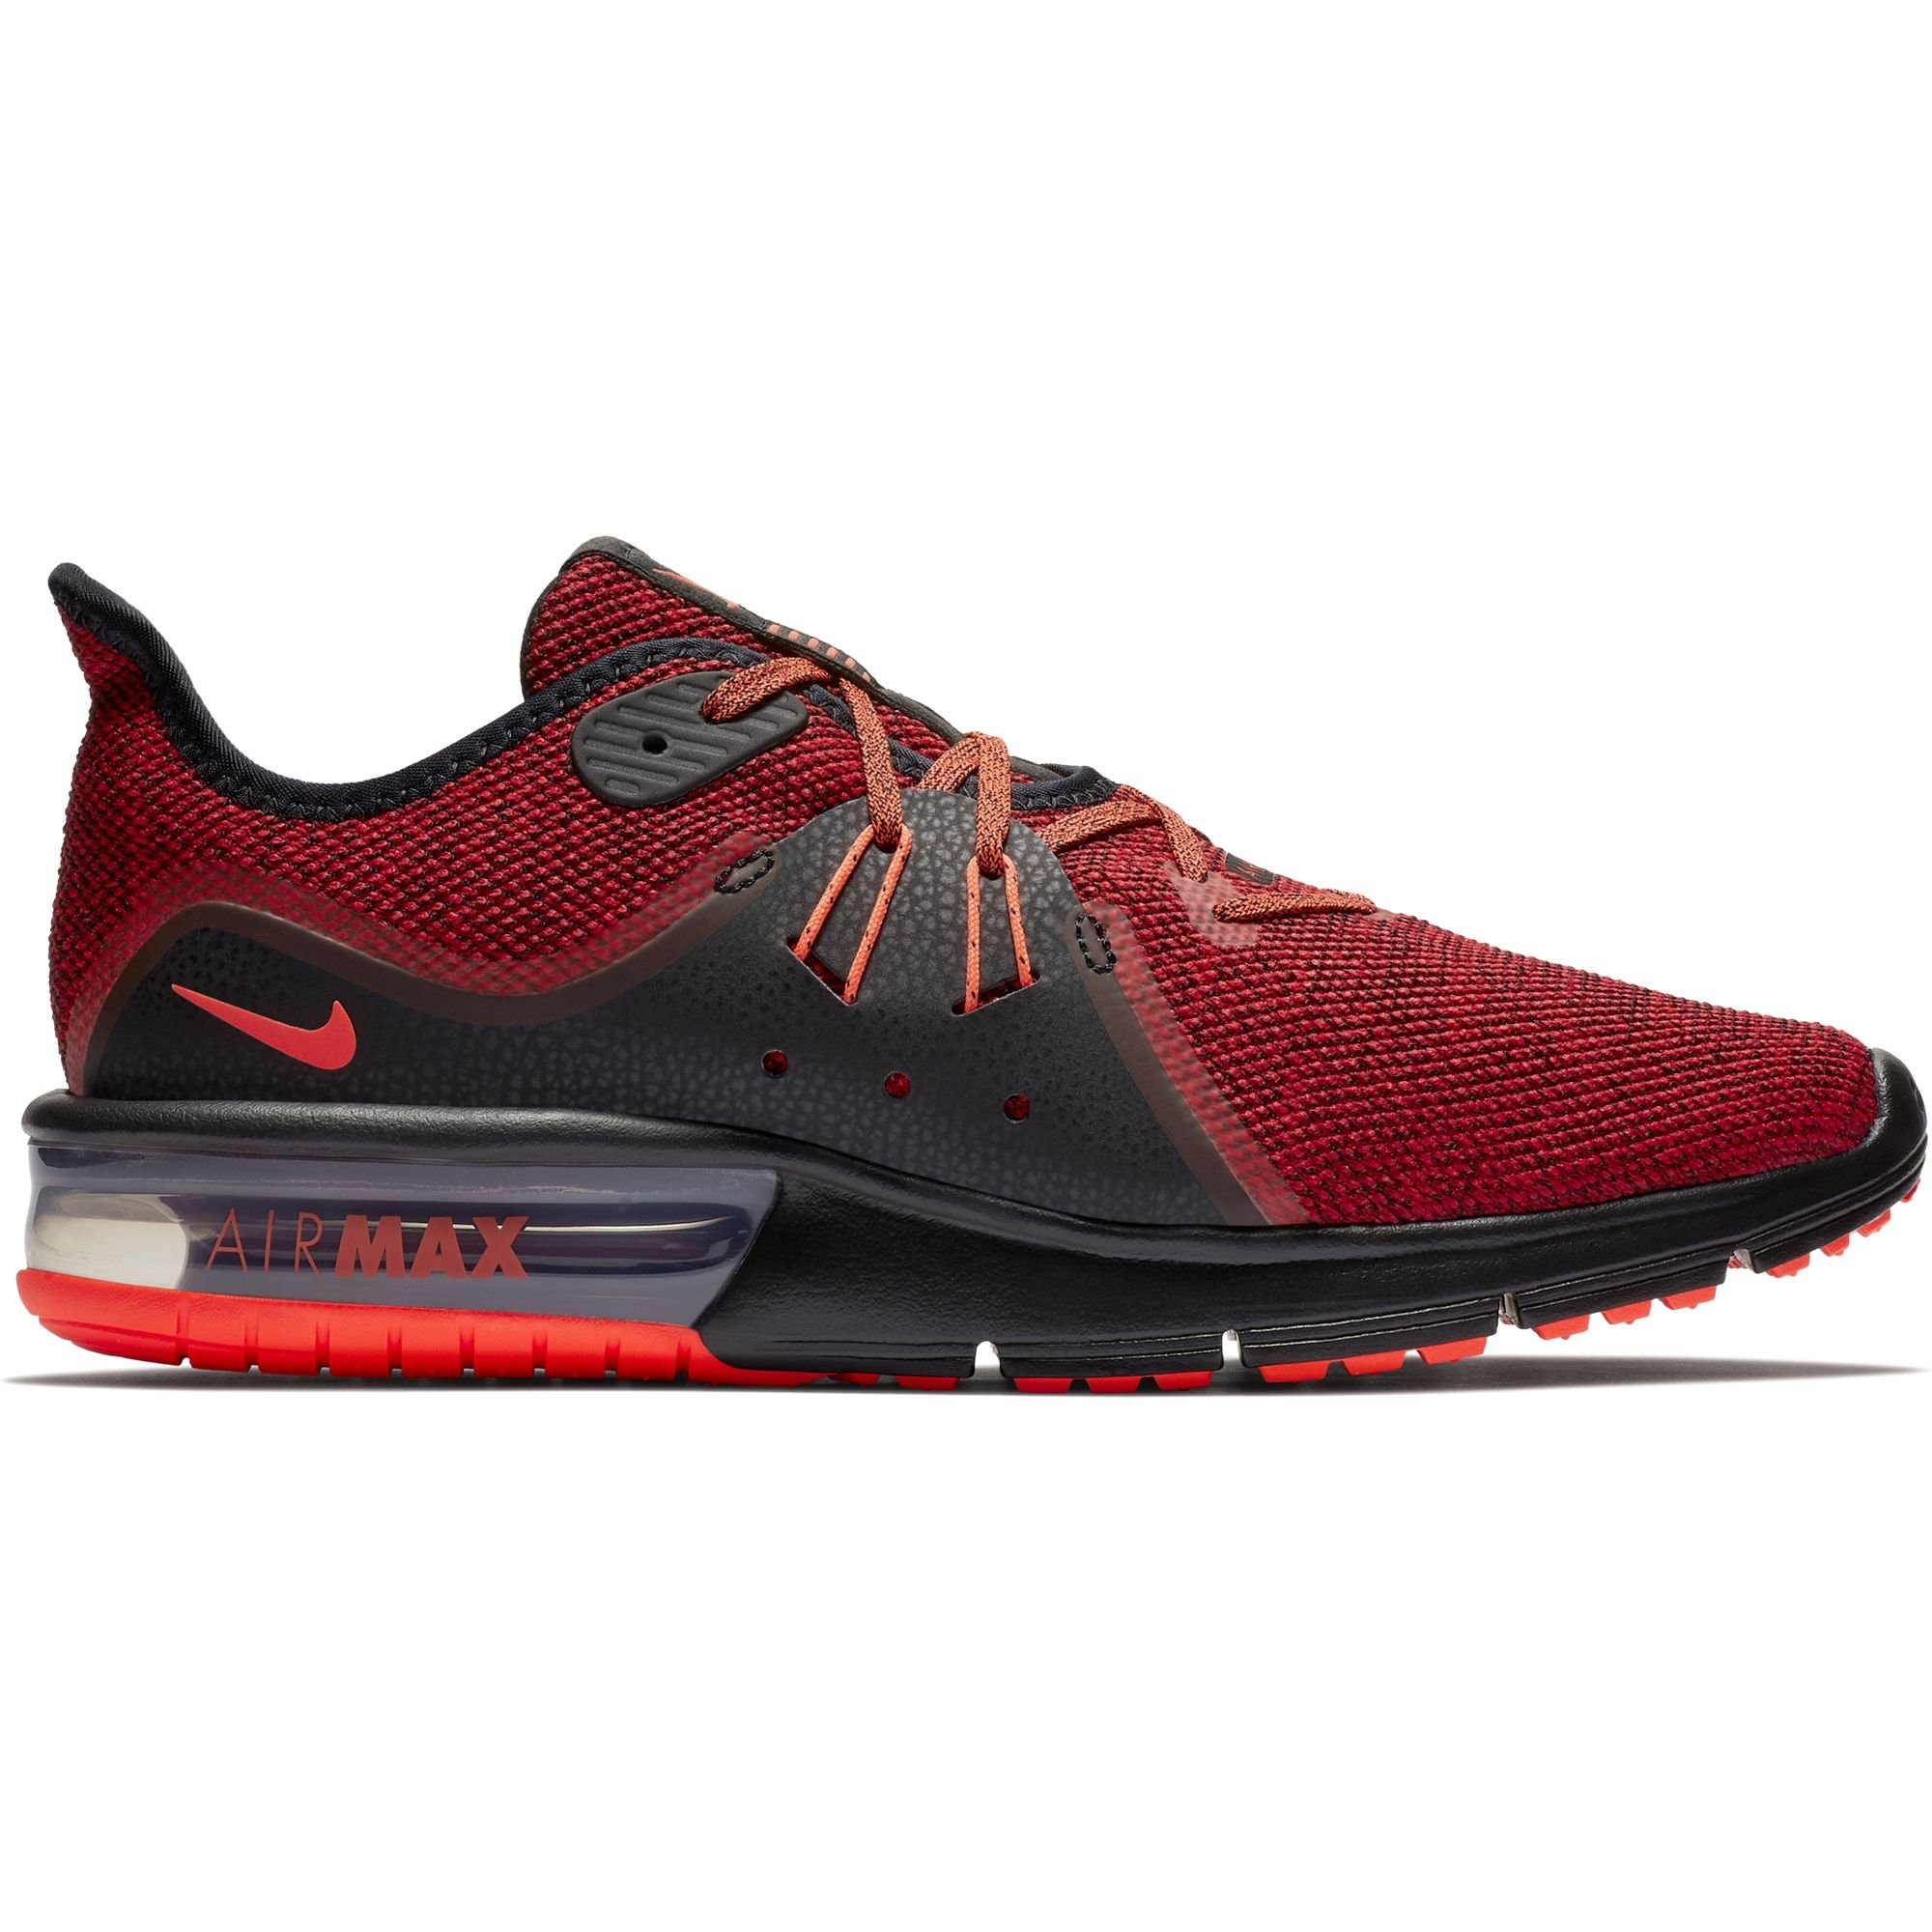 50c0655fe1b Galleon - NIKE Men s Air Max Sequent 3 Running Shoes (9.5 D(M) US ...